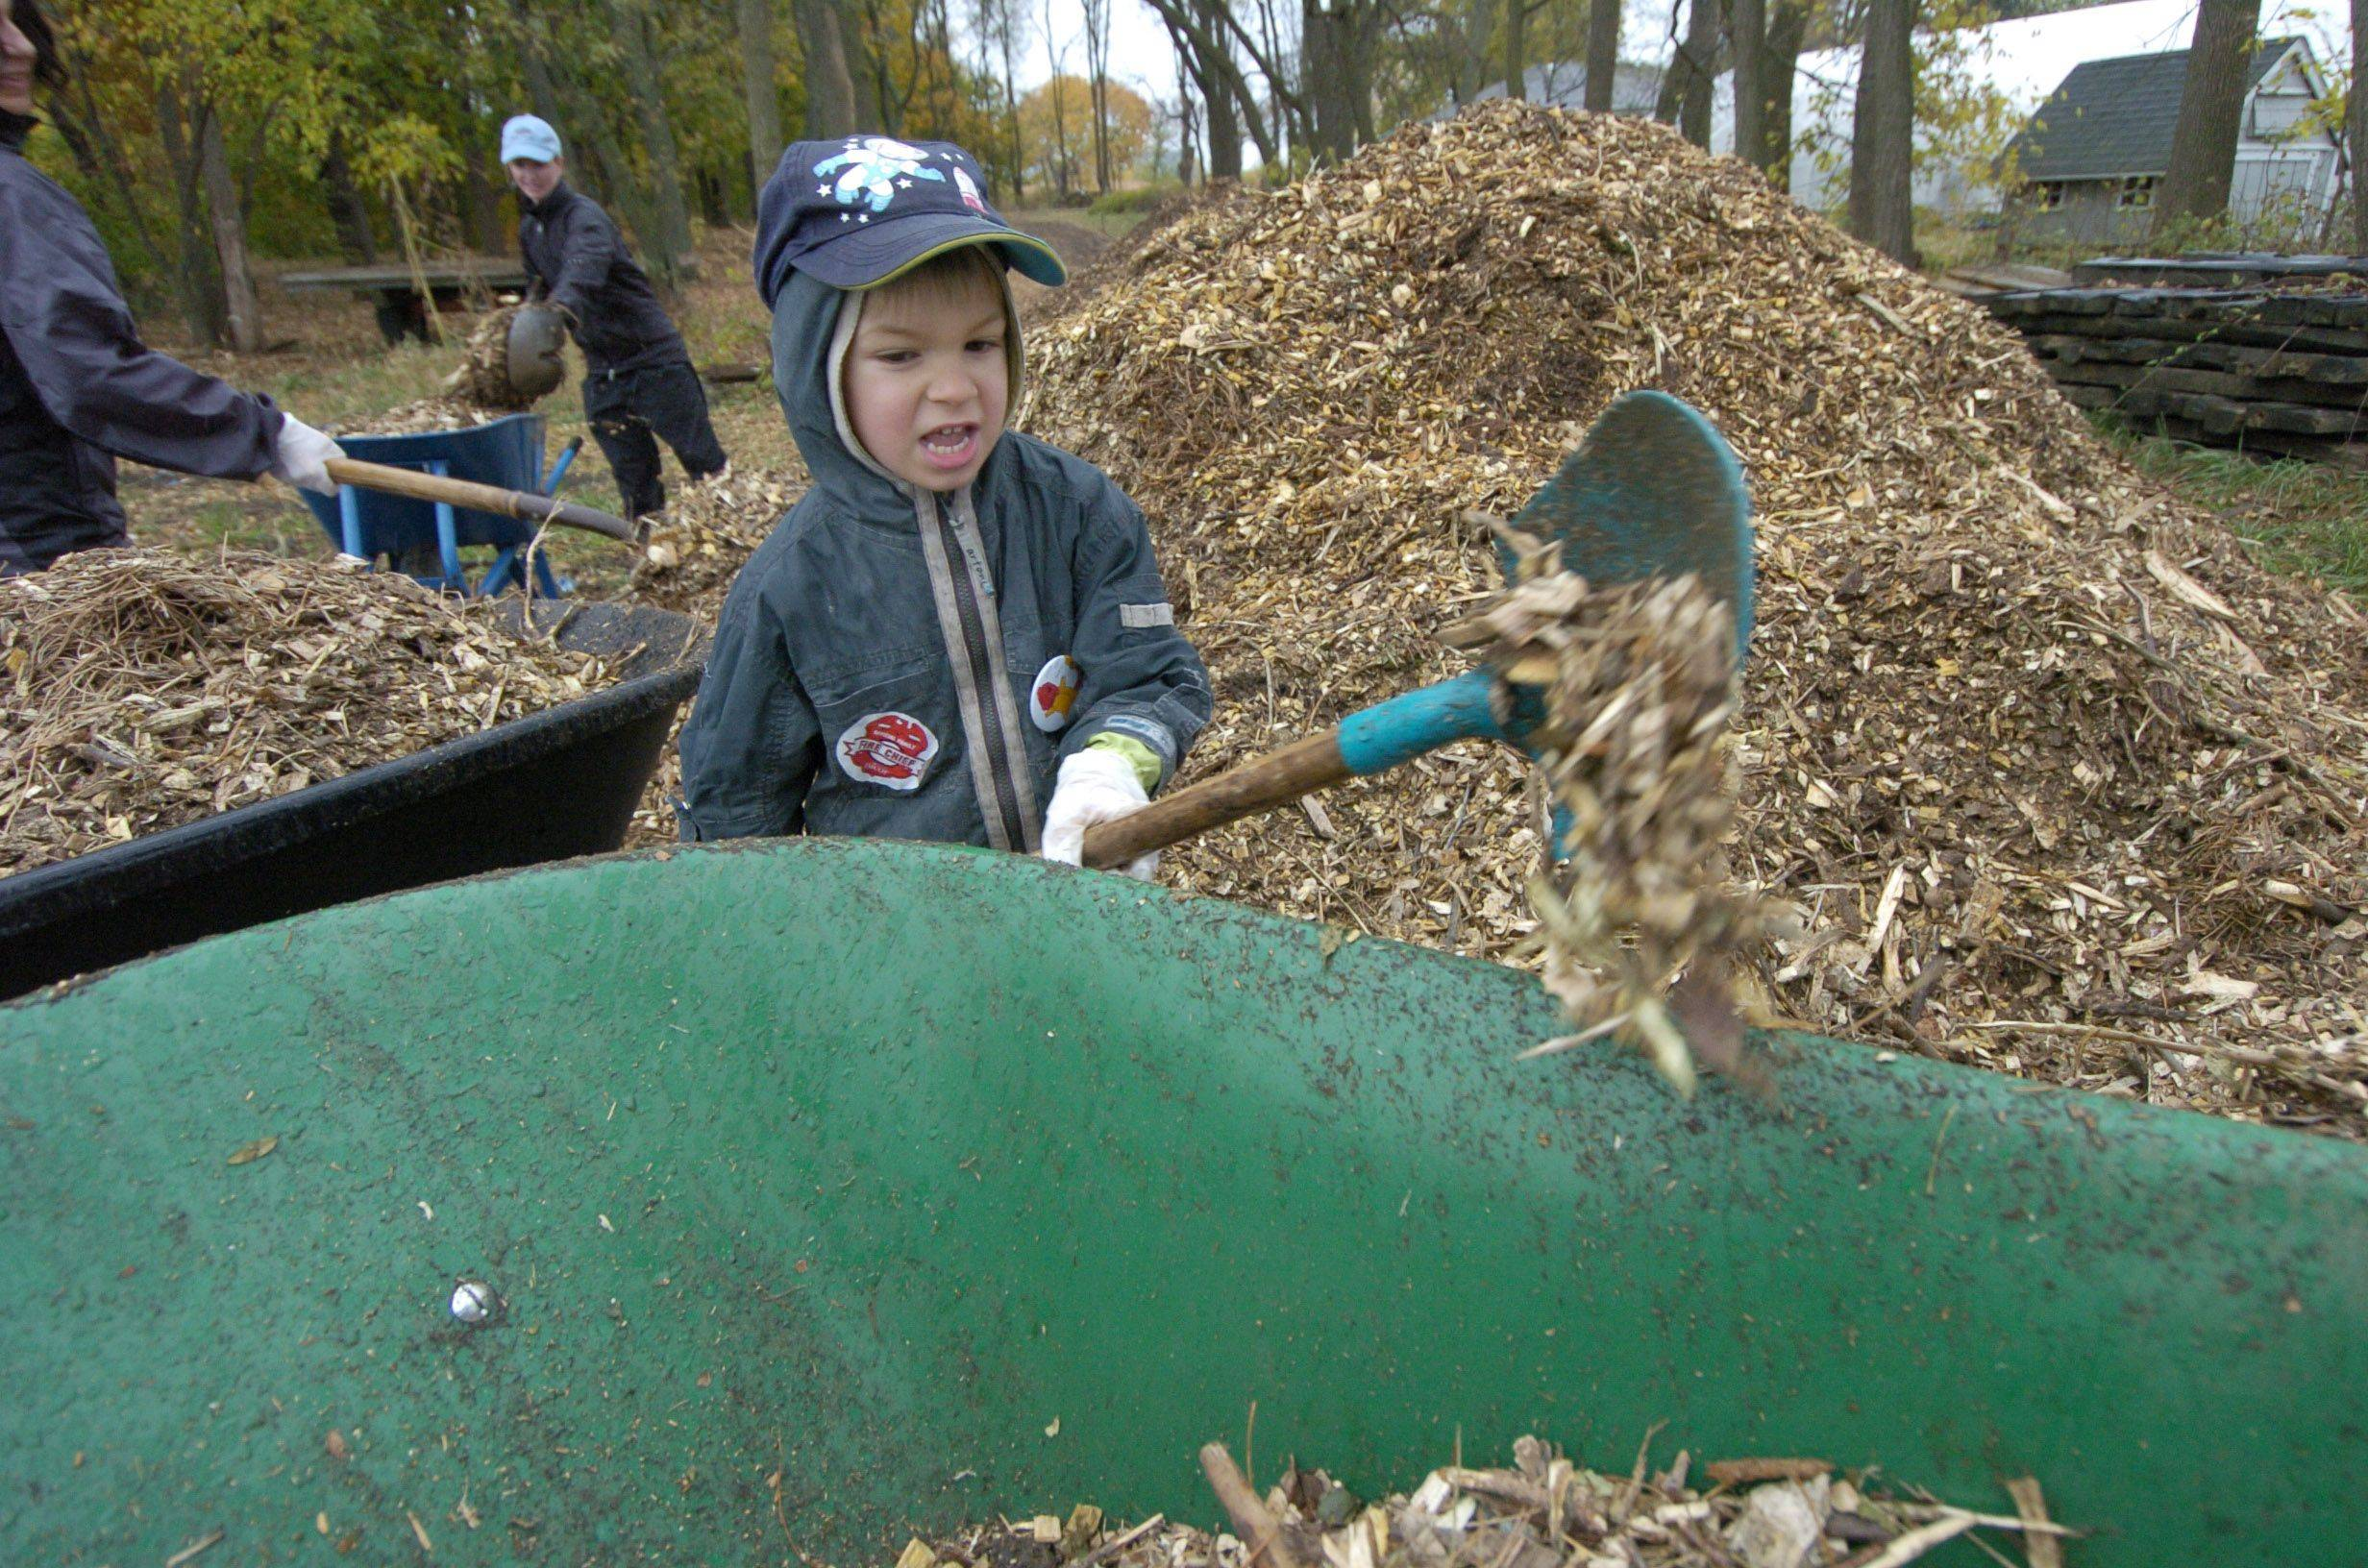 Mikey Todorova, 5, of Buffalo Grove shovels mulch during Saturday's Make a Difference Day event at Prairie Crossing Learning Farm in Grayslake.